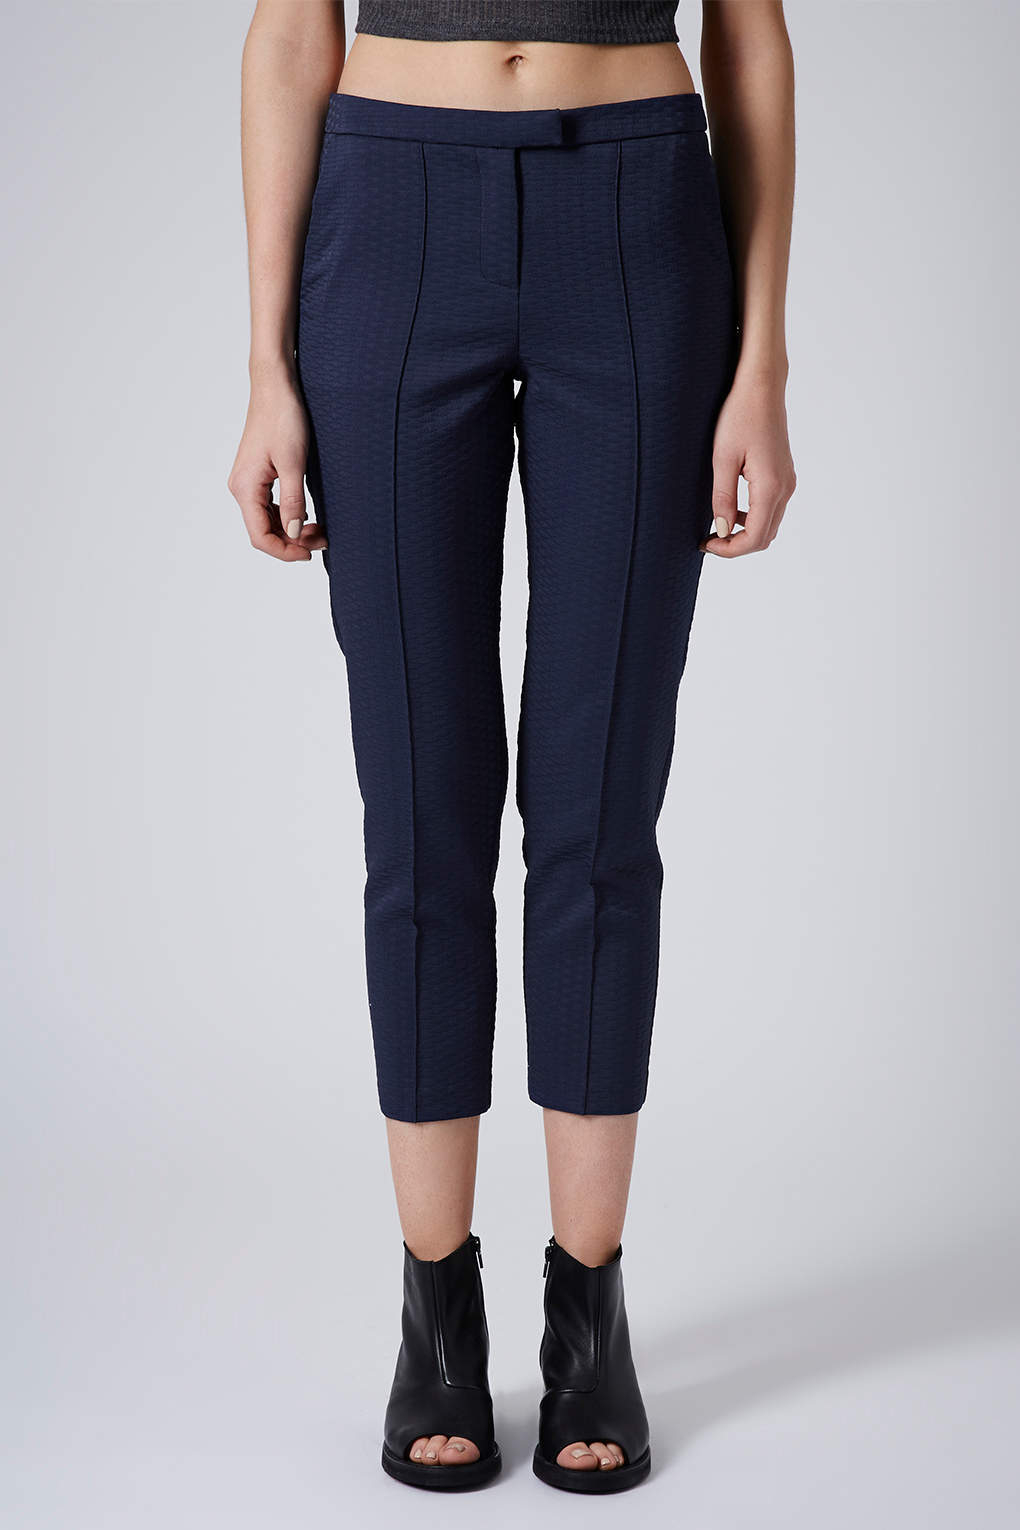 lowest discount best cheap preview of Petite Textured Cigarette Trousers